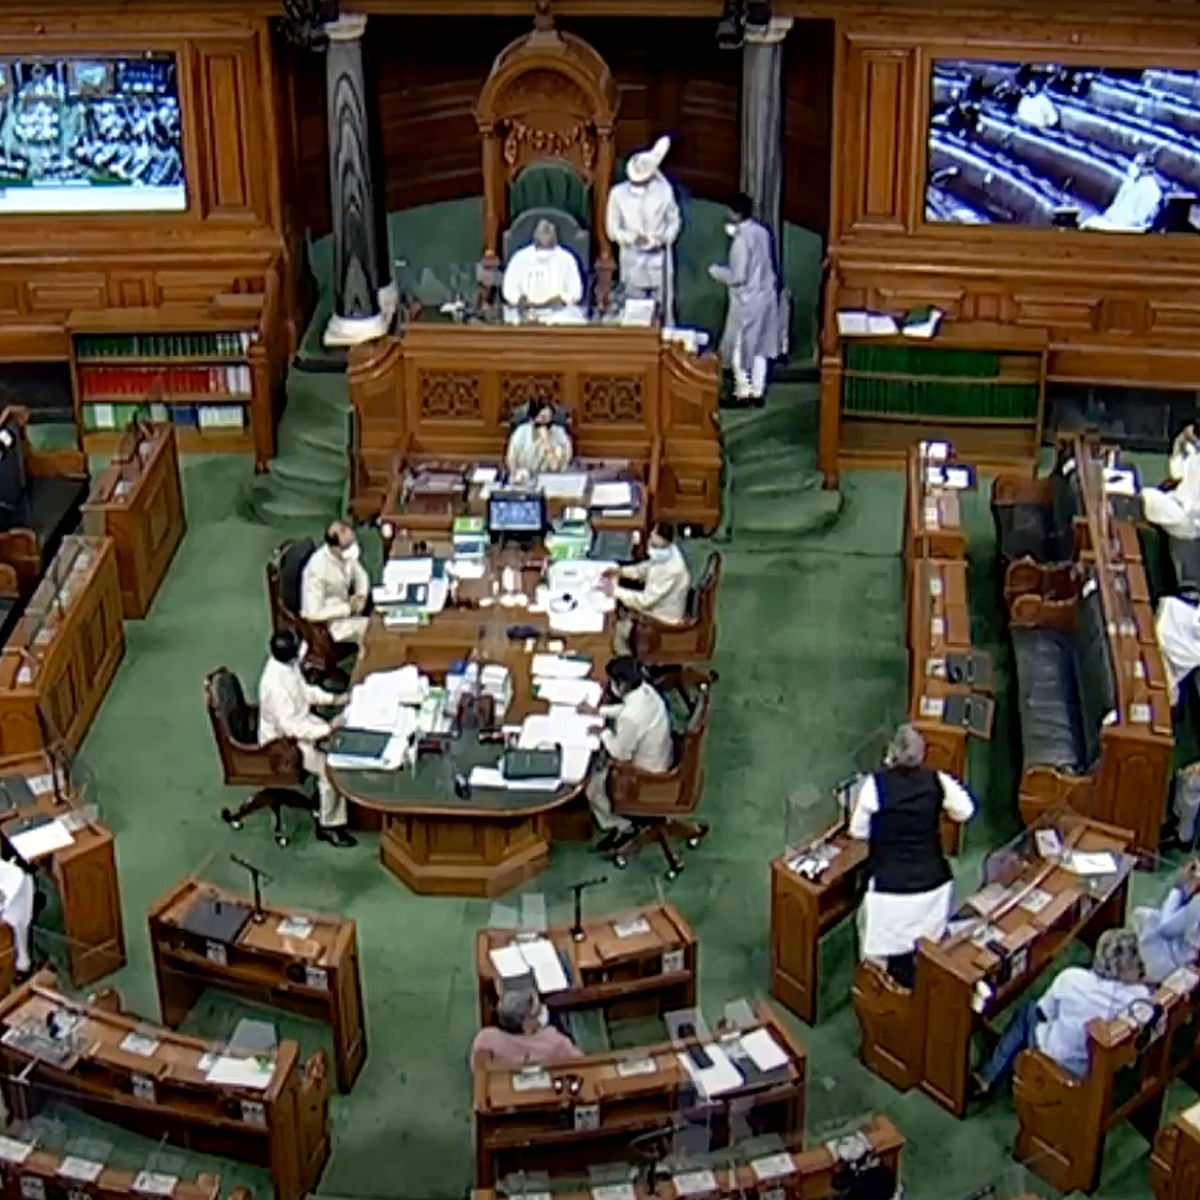 Parliament monsoon session: Lok Sabha adjourned till 3 pm today after marathon midnight proceedings